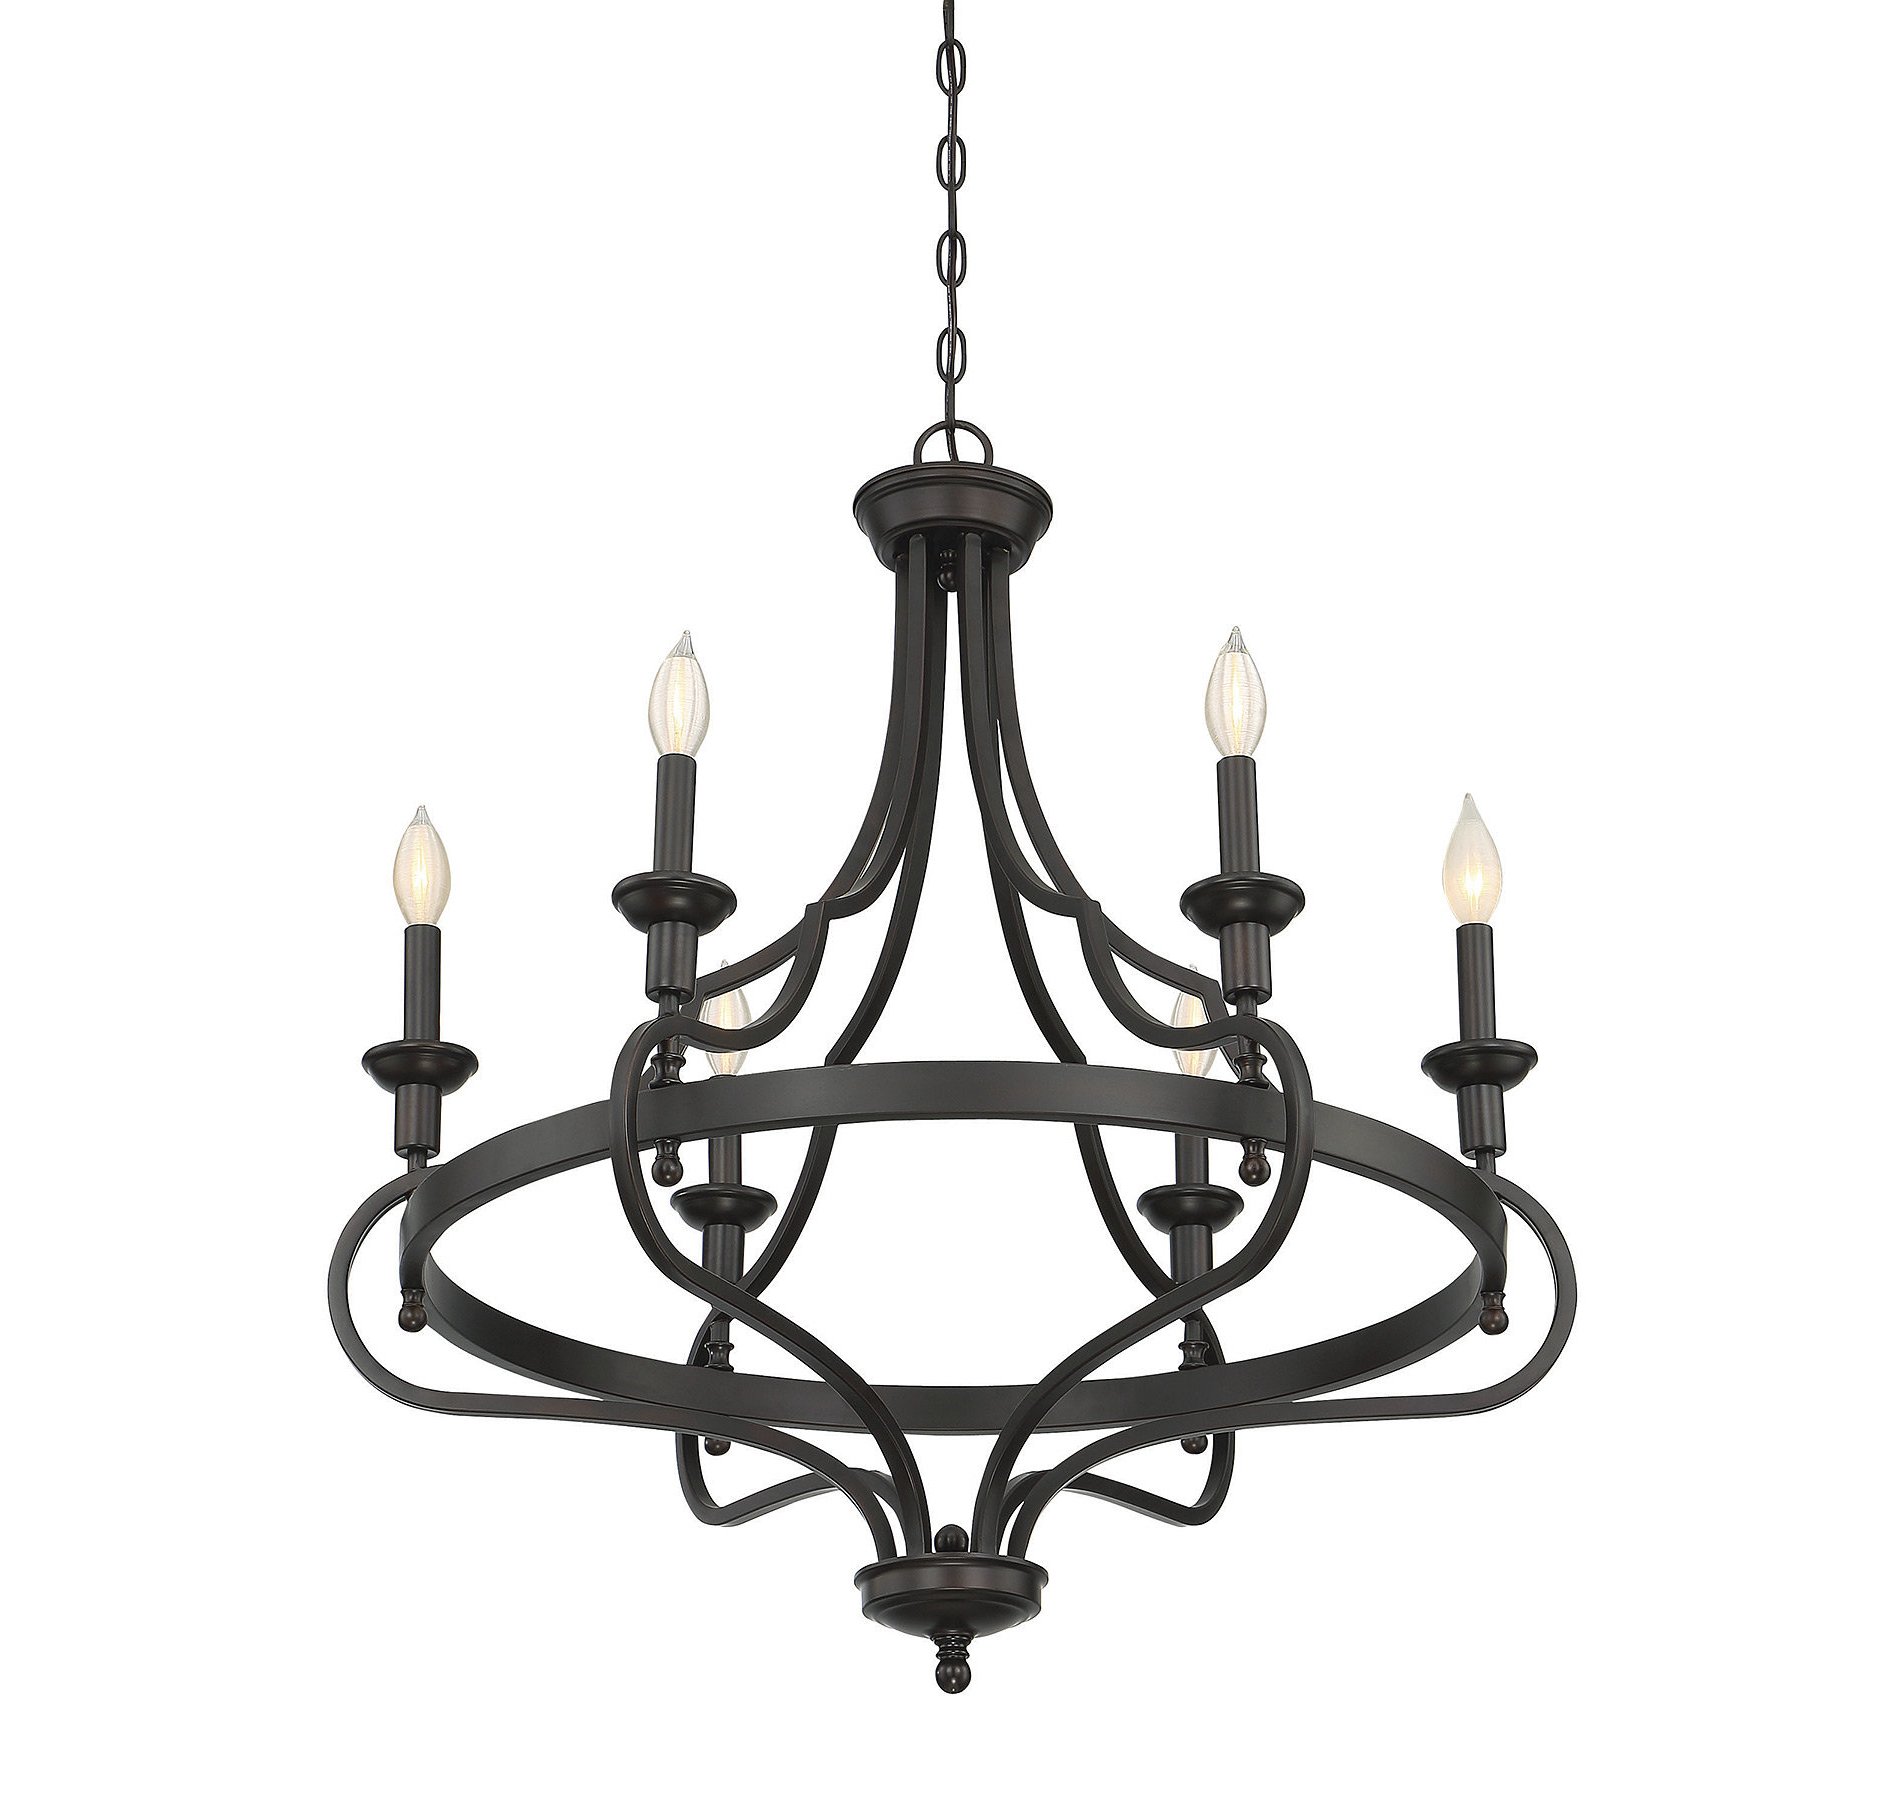 Perseus 6 Light Candle Style Chandeliers Intended For 2020 Jaycee 6 Light Chandelier (View 17 of 20)